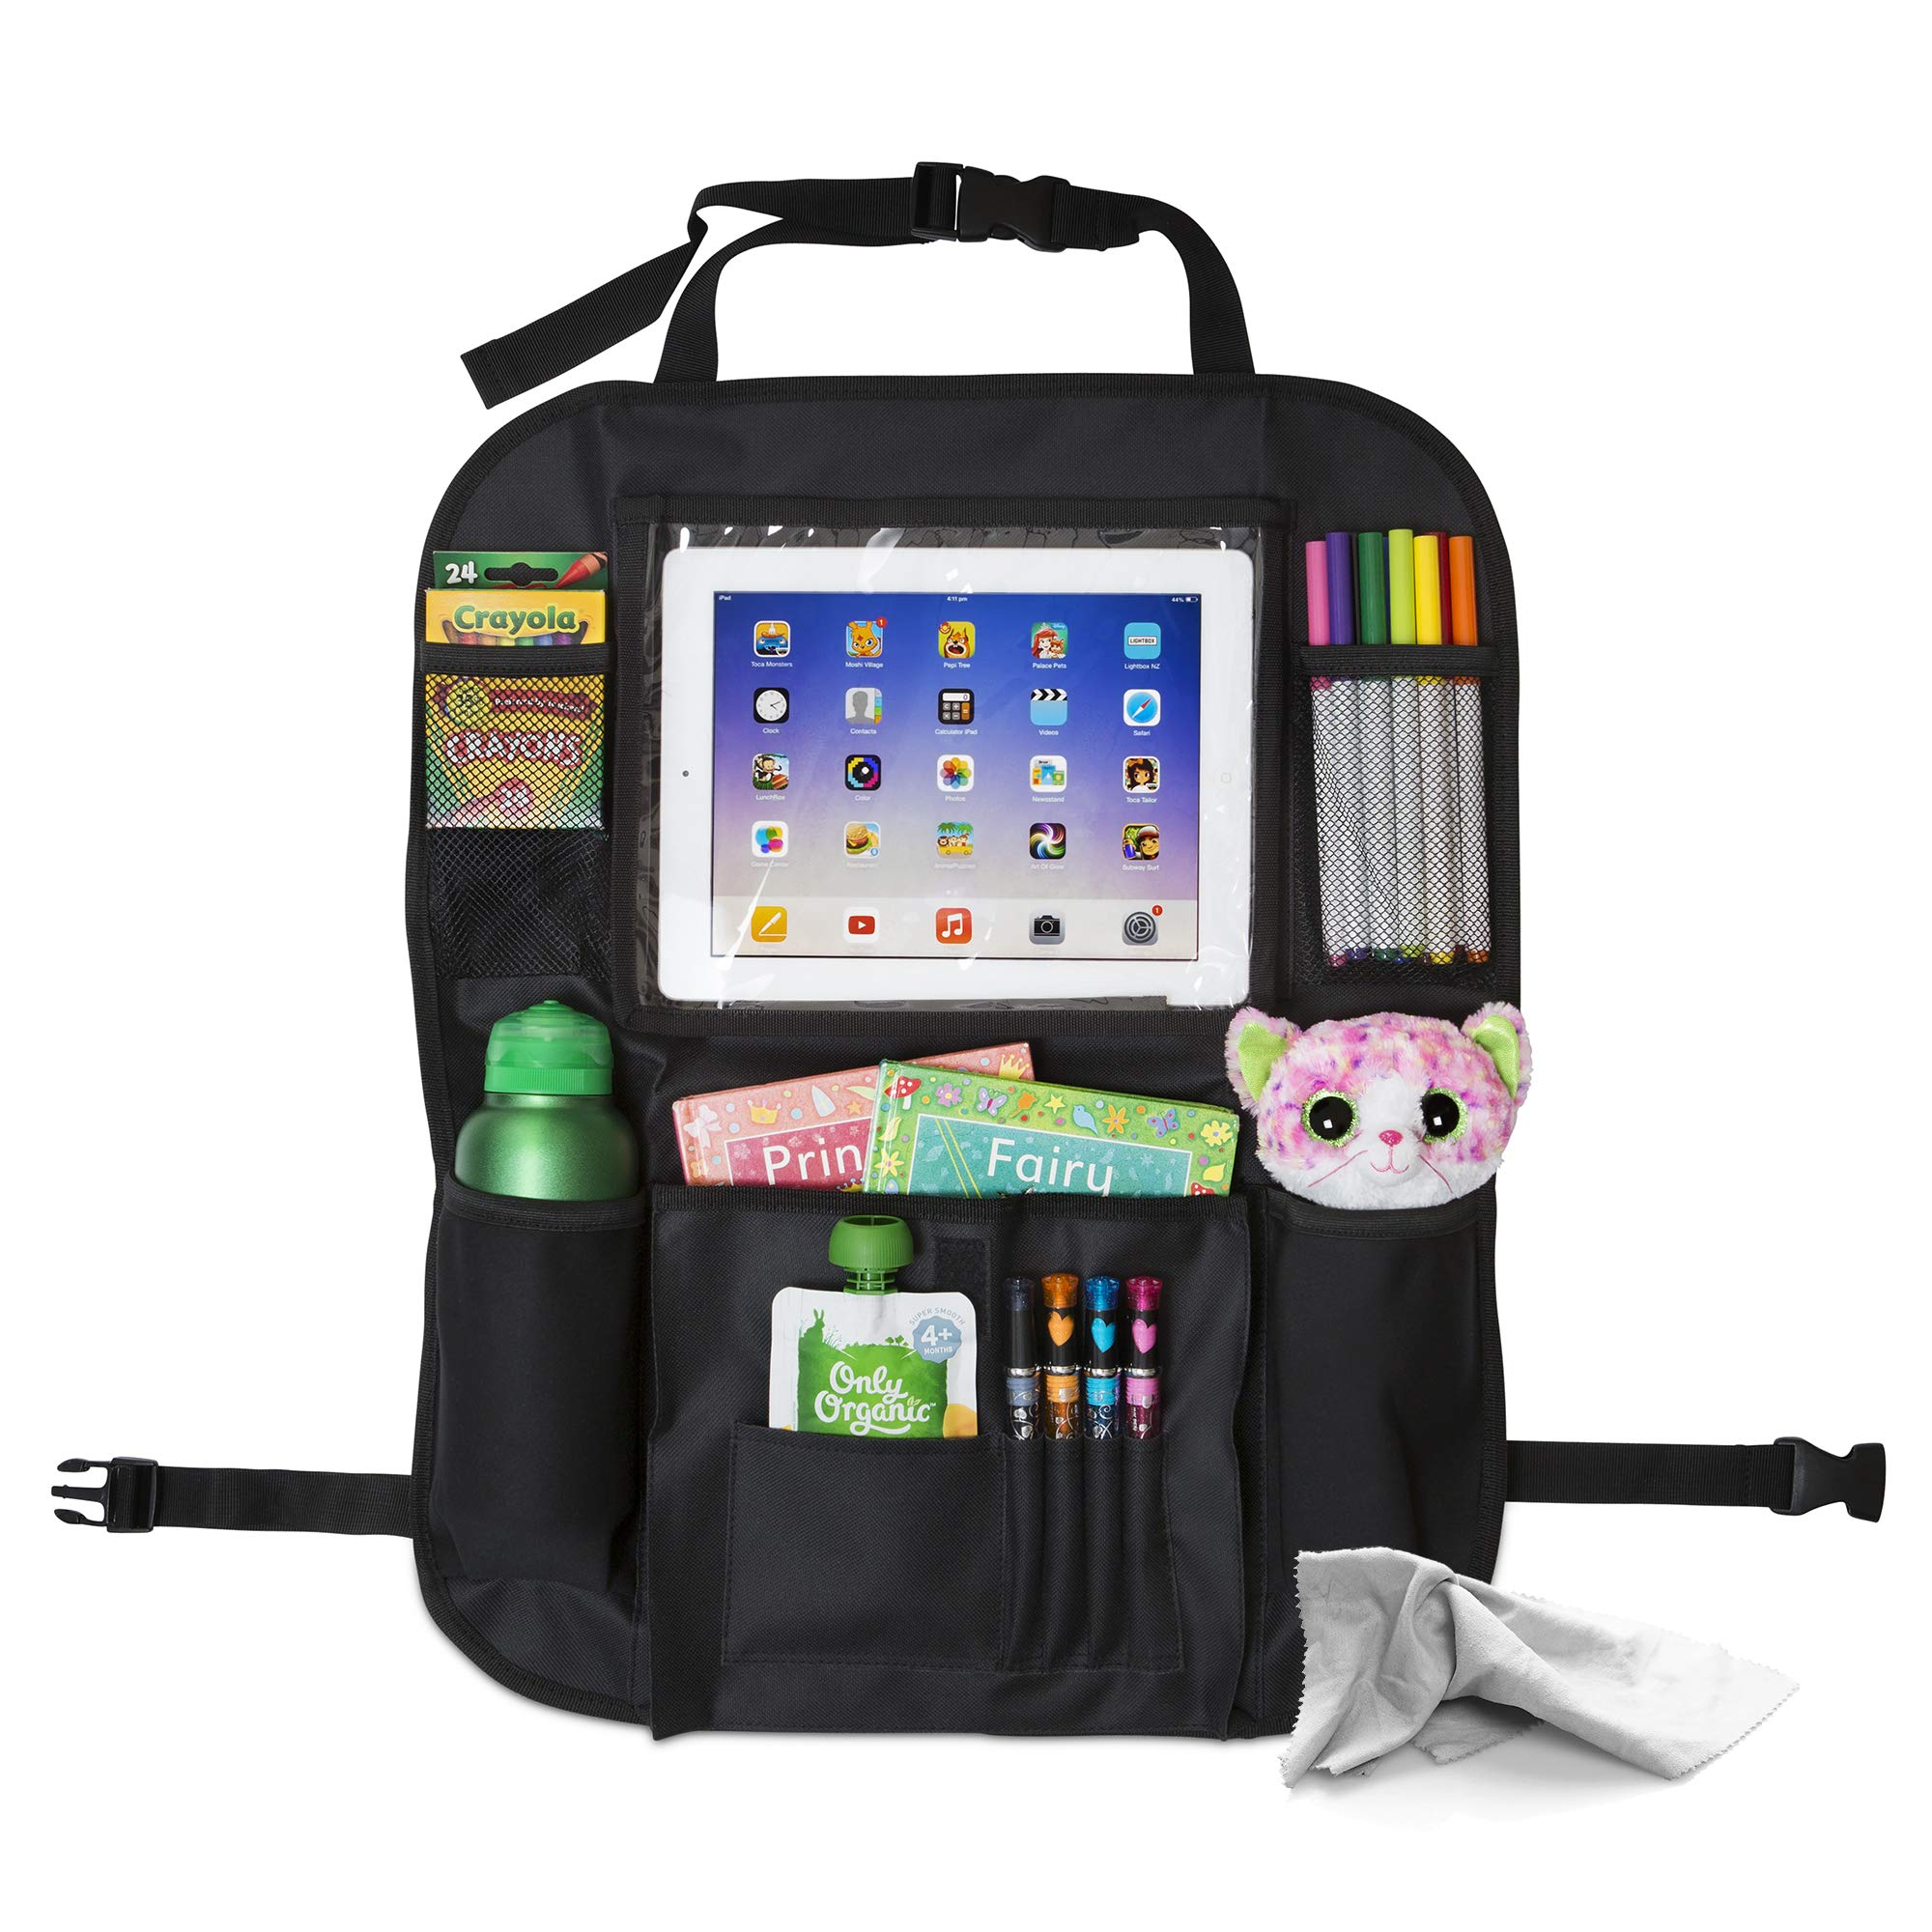 Car Backseat Organizer for Kids with iPad & Tablet Holder, Storage for Toys, Wipes & Bottles with Thermo Pockets - Auto Kick Mat & Car Seat Protector